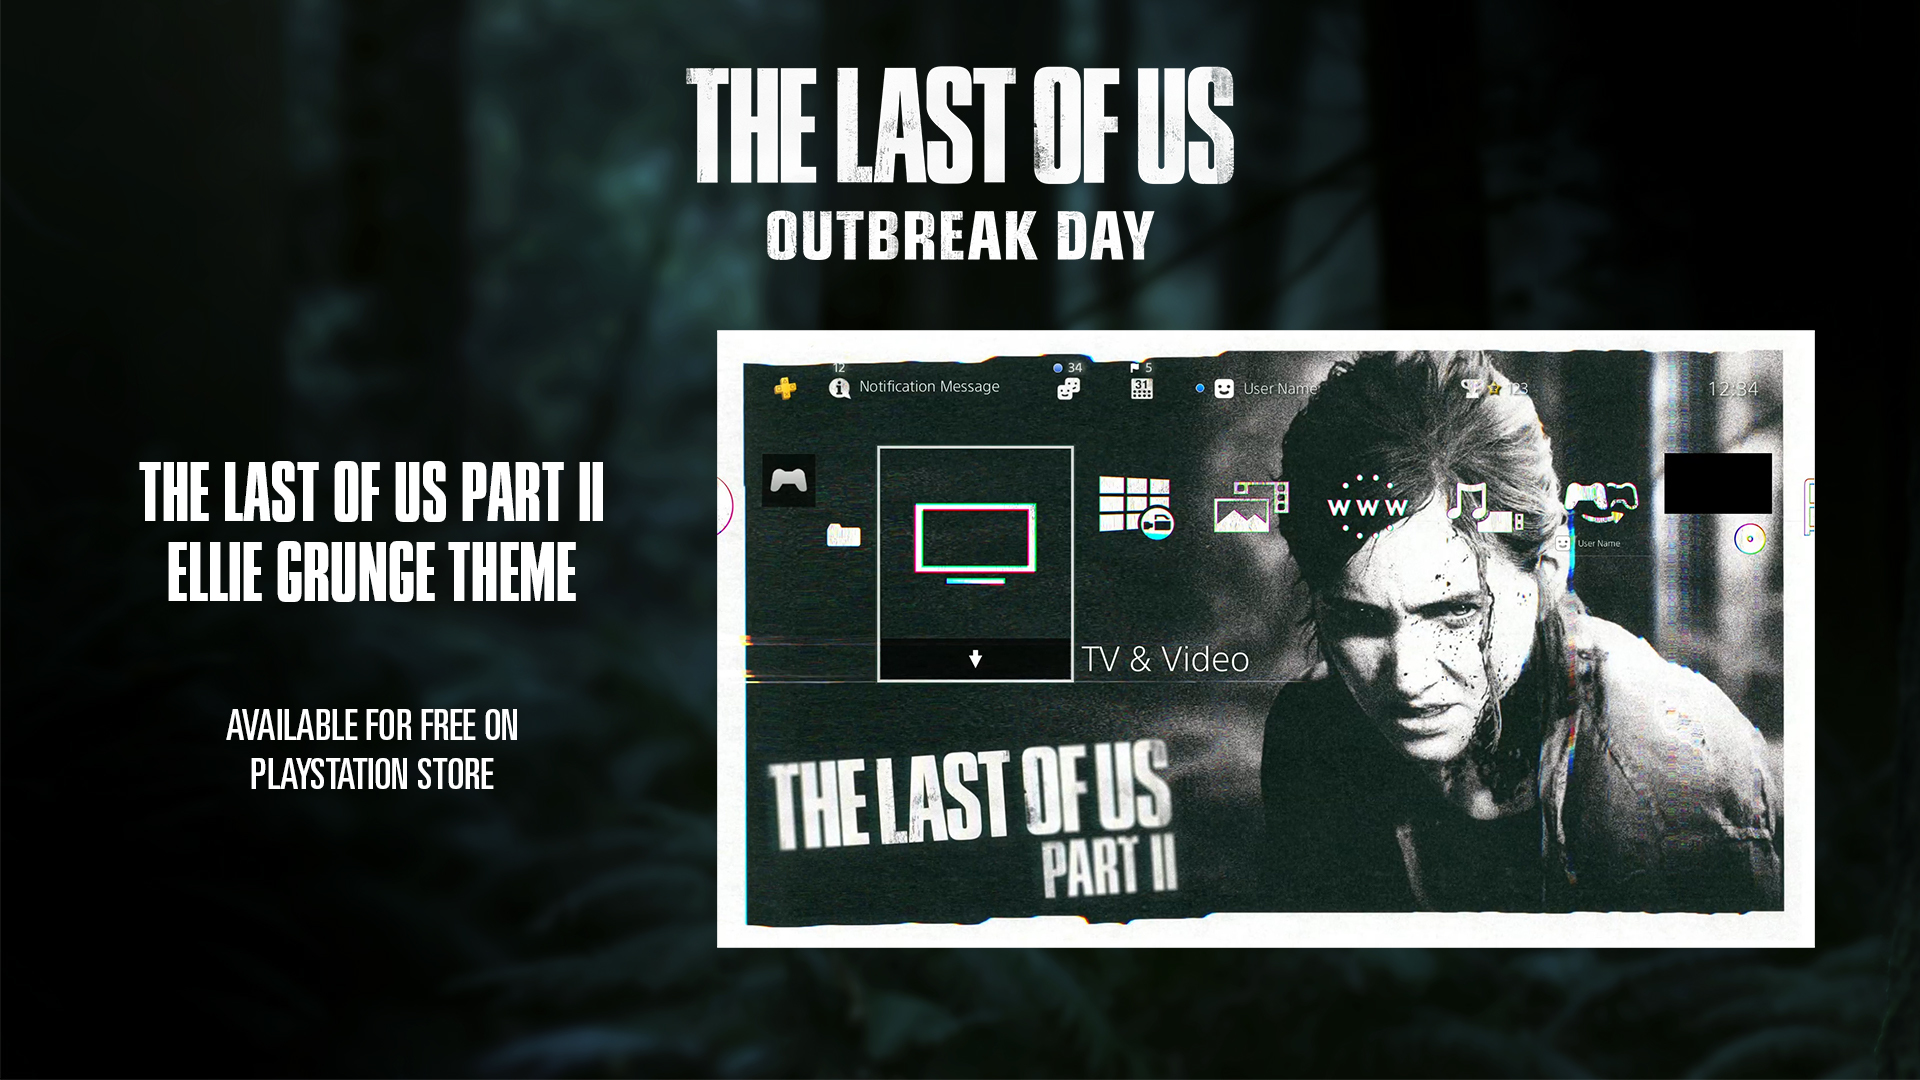 Naughty Dog The Last Of Us Part Ii Outbreak Day 2019